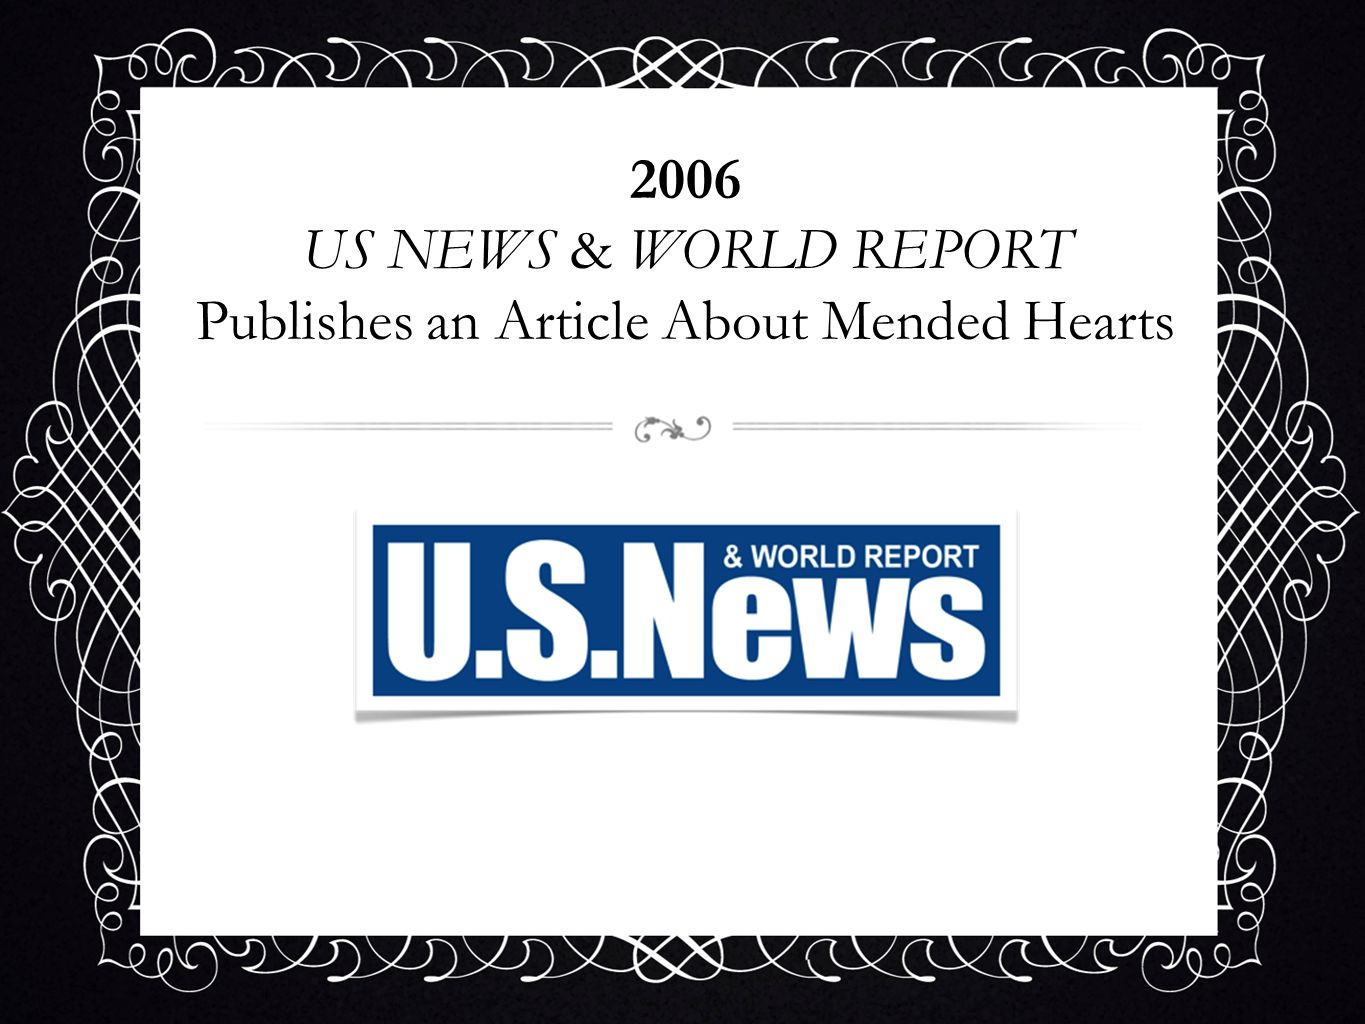 2006 US NEWS & WORLD REPORT Publishes an Article About Mended Hearts